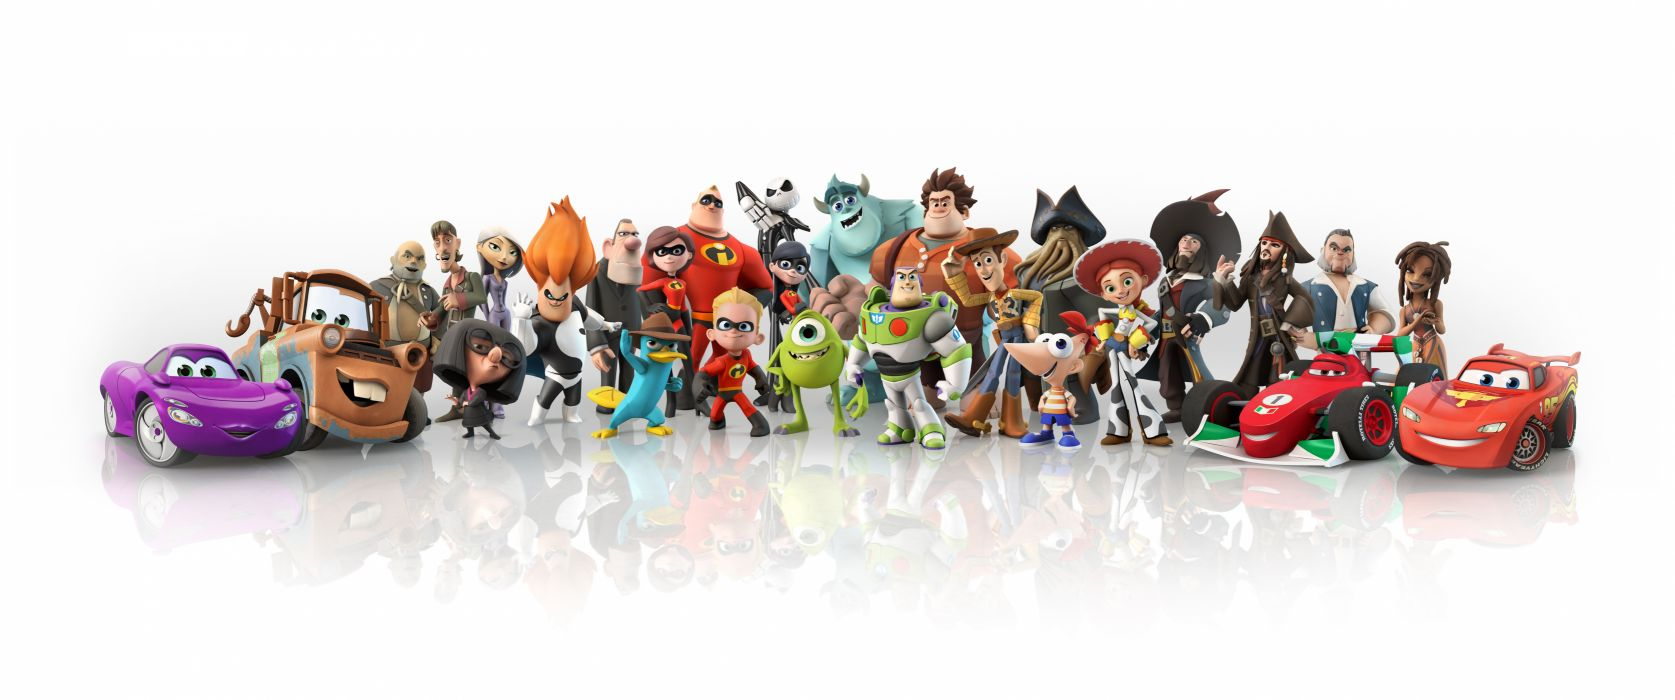 Monsters Inc Toys Toy Story Pirates Pirates of the Caribbean The Incredibles Pixar Cartoons Fantasy Movies wallpaper